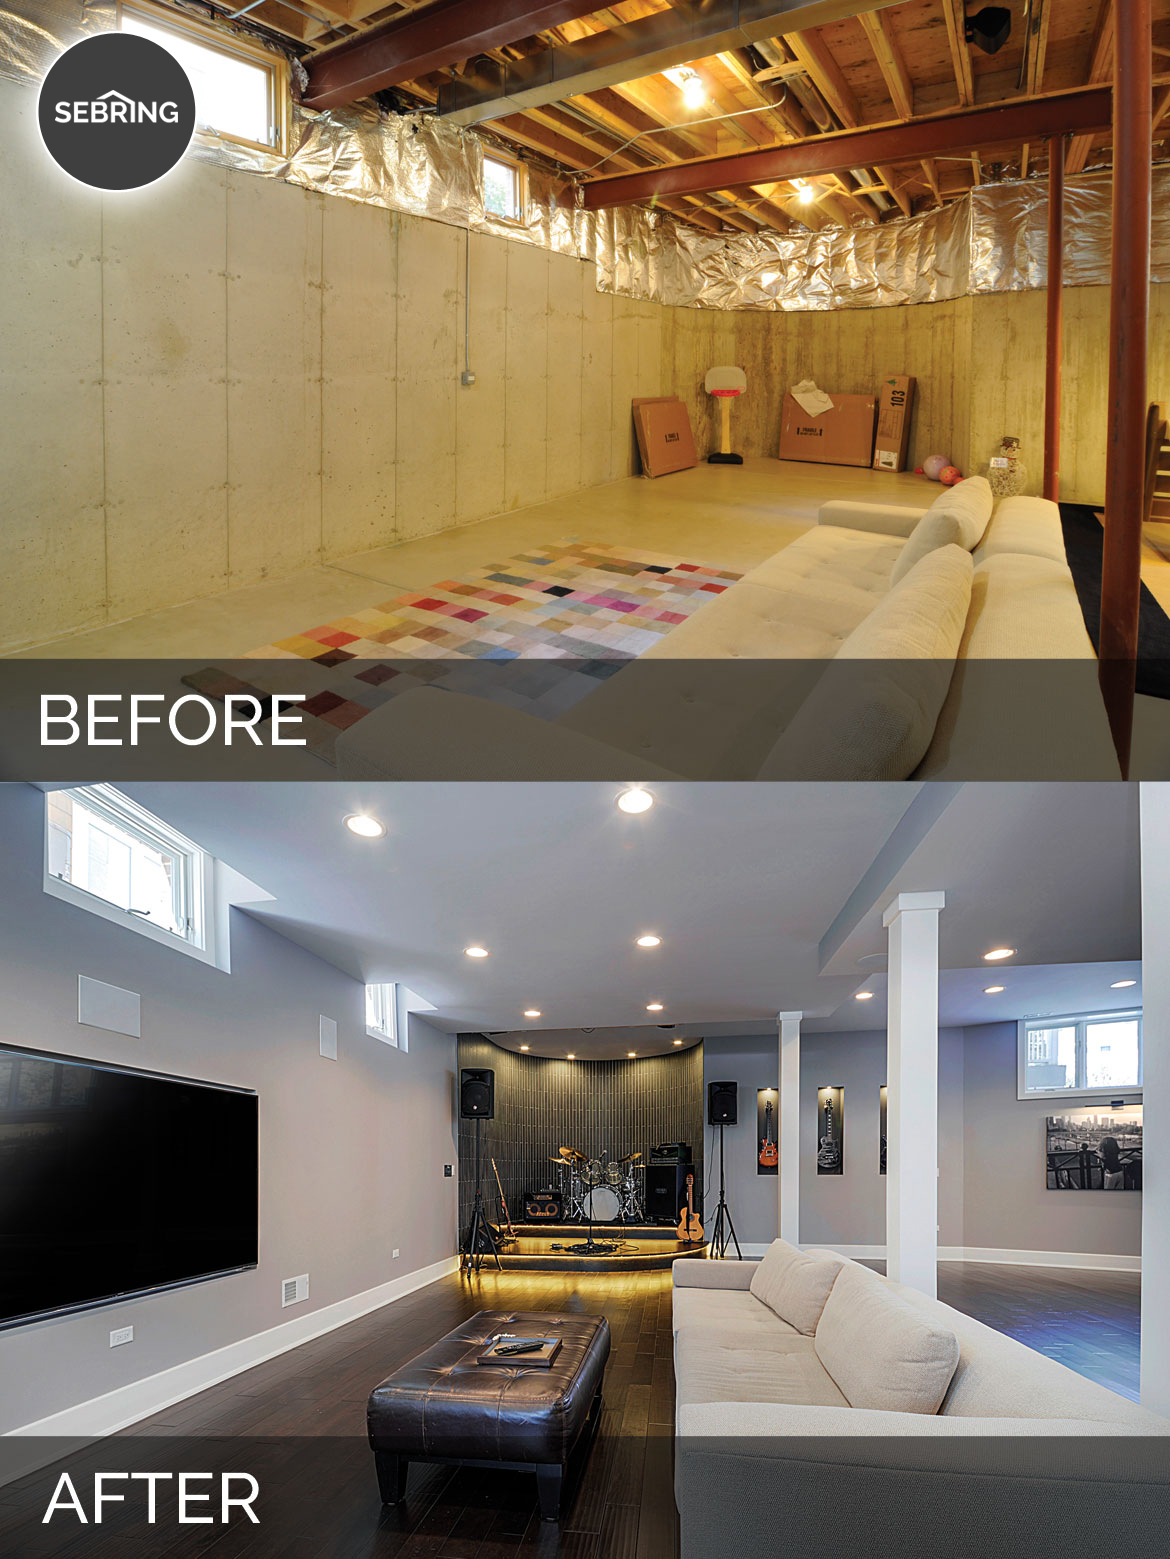 Sidd Nisha S Basement Before After Pictures Home Remodeling Contractors Sebring Design Build